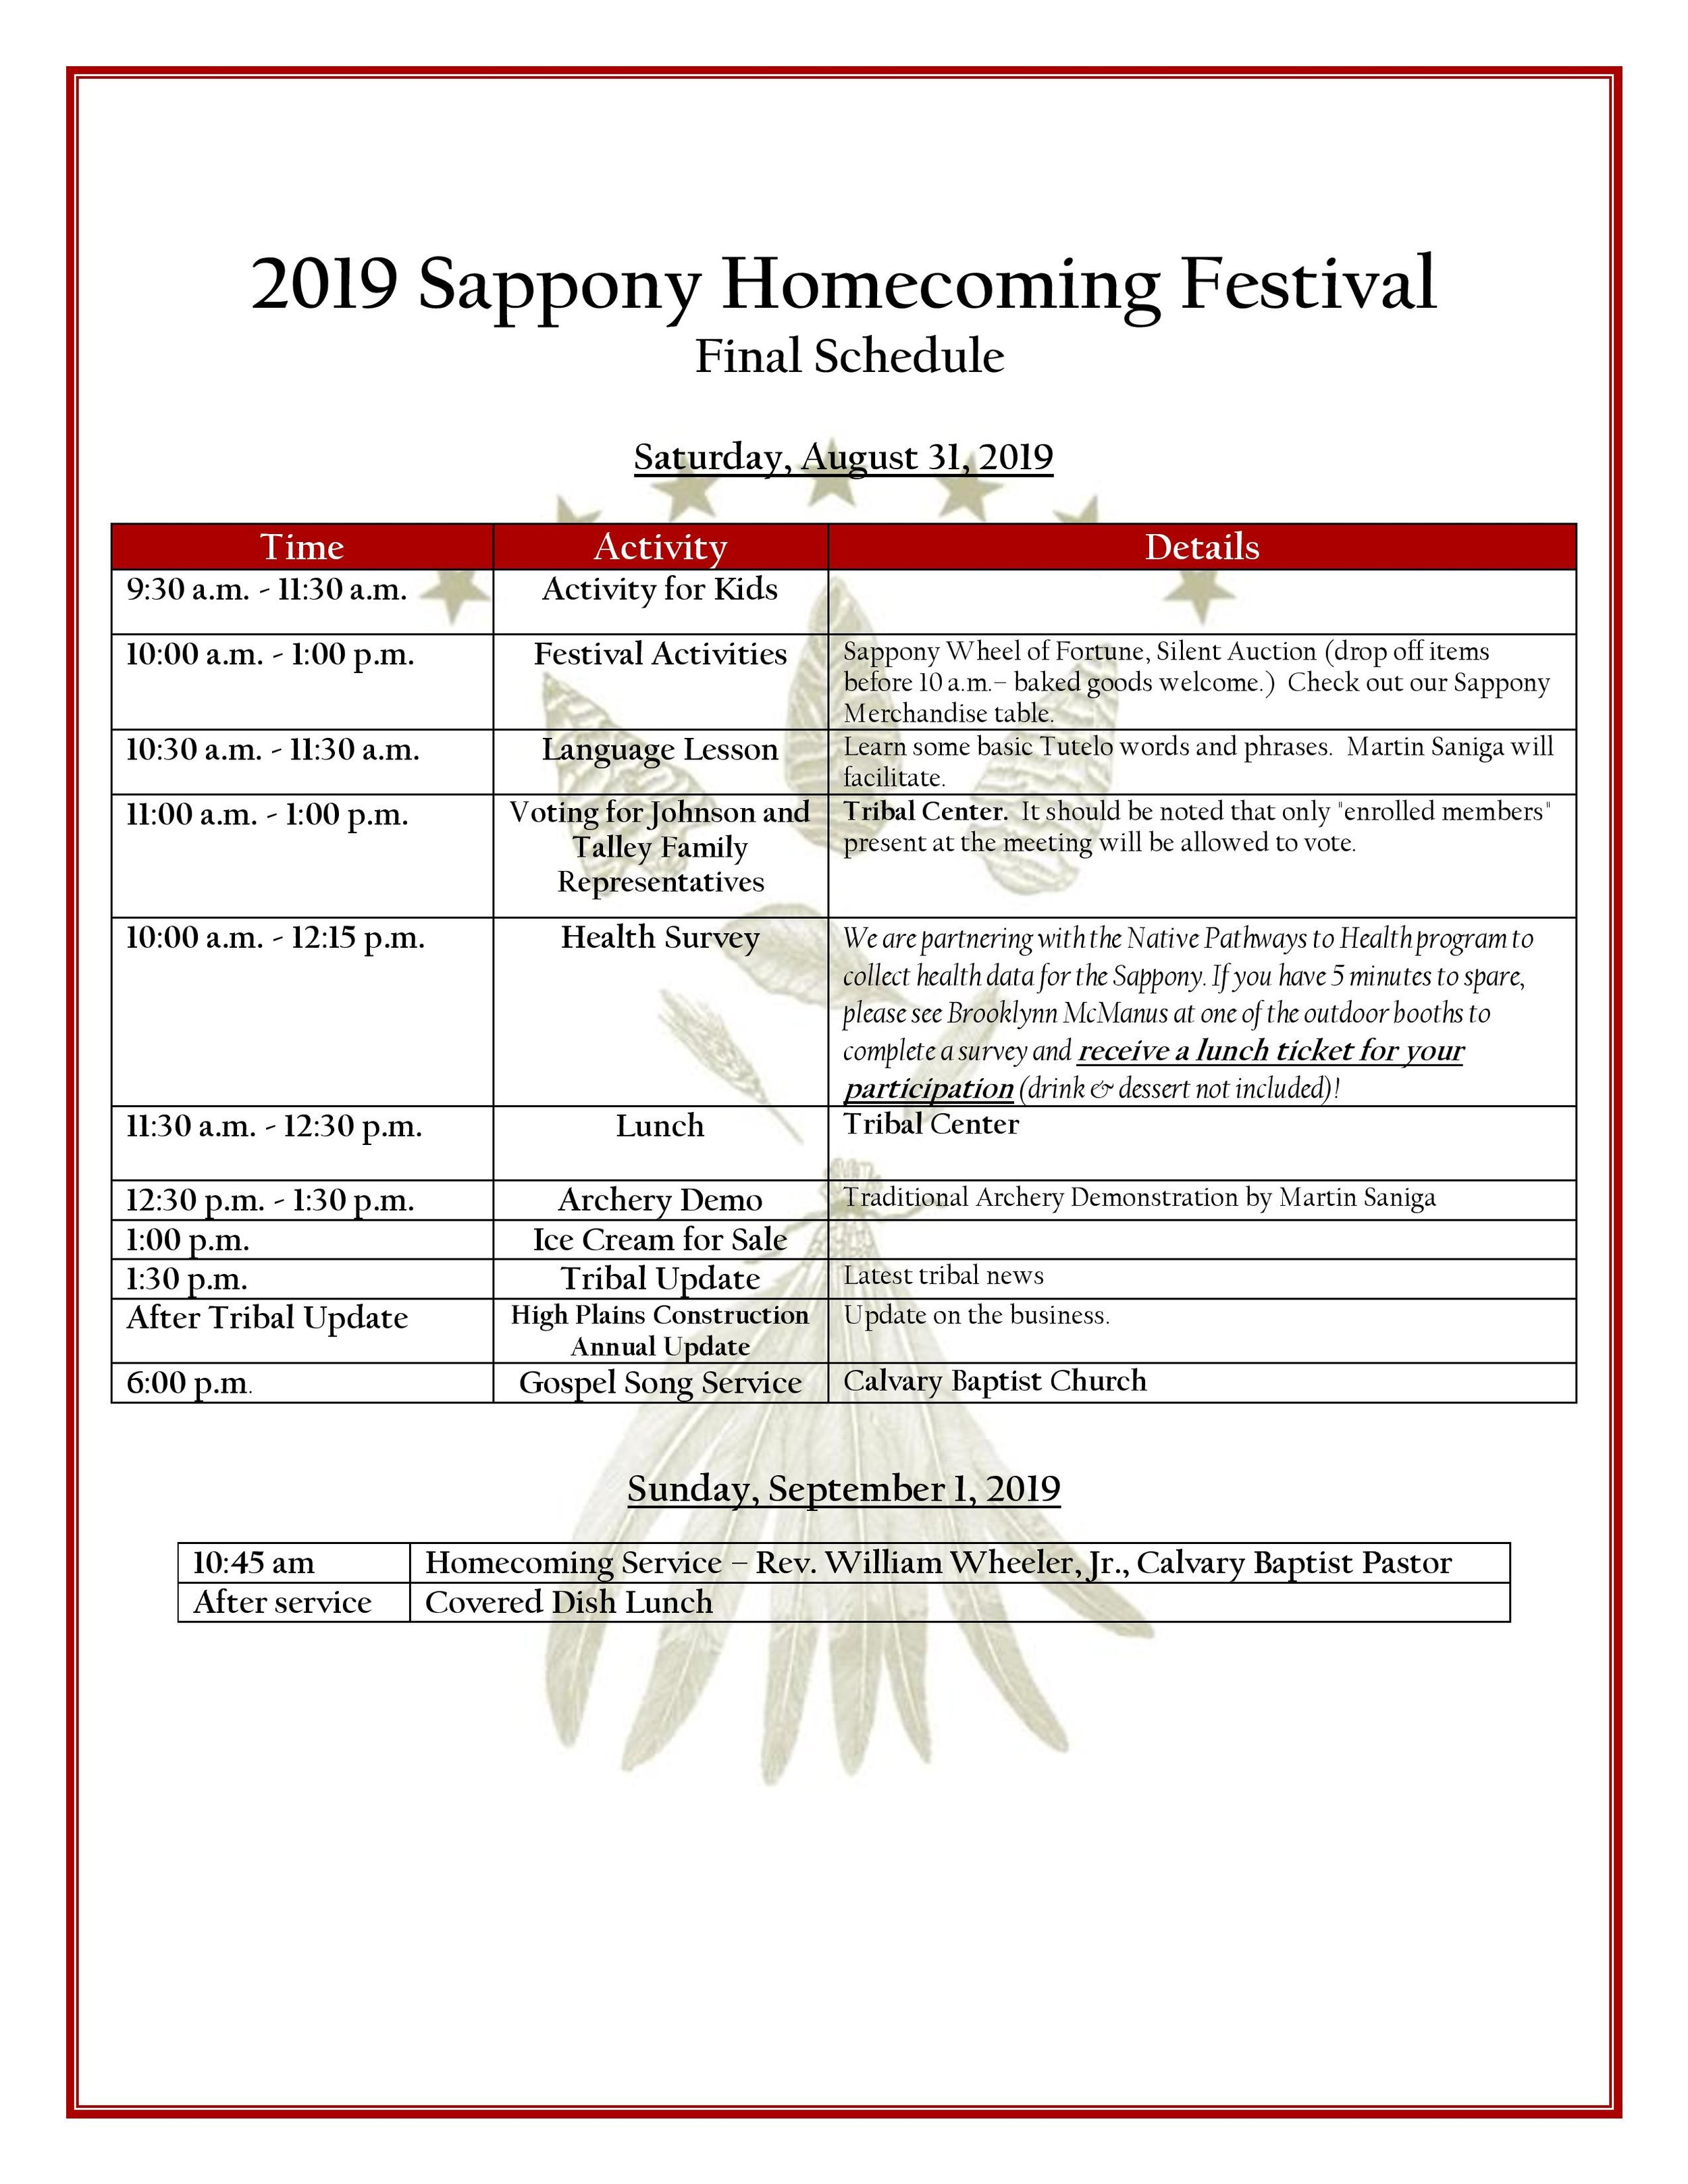 2019 Sappony Homecoming Festival Tentative Schedule v4-page-001-1.jpg